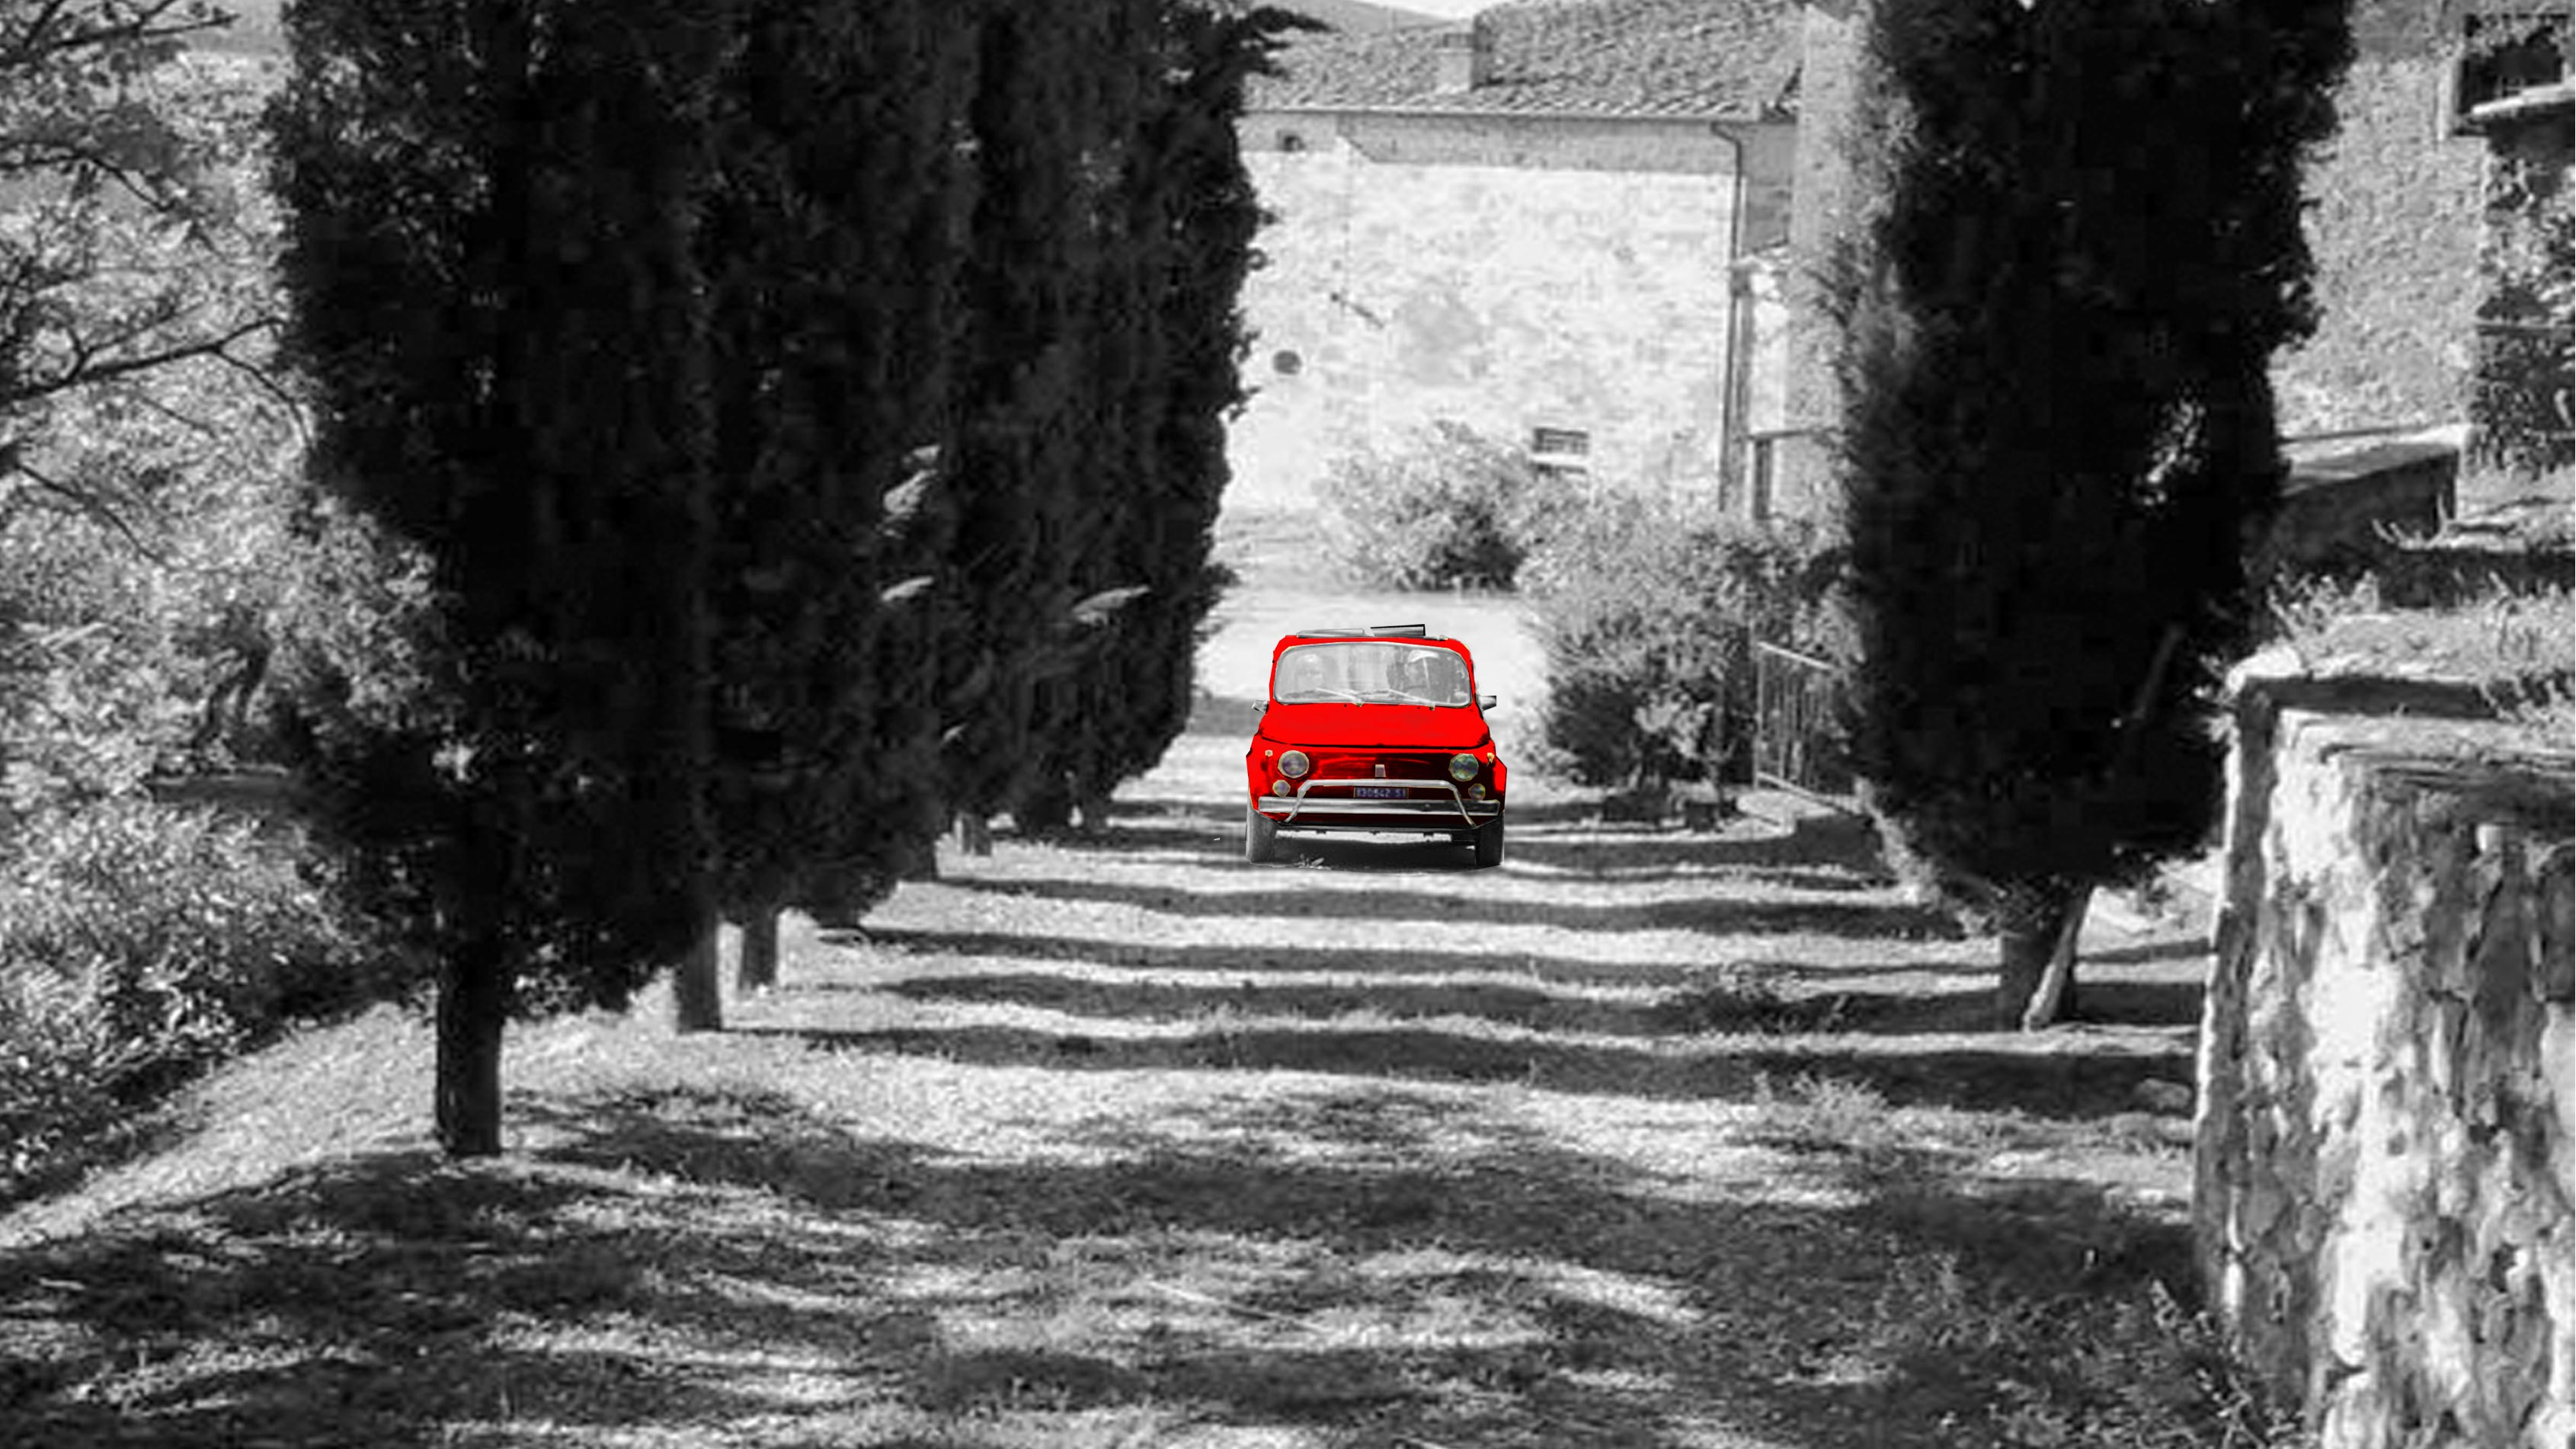 Vintage fiat 500 tours in chianti classico wineries tuscany